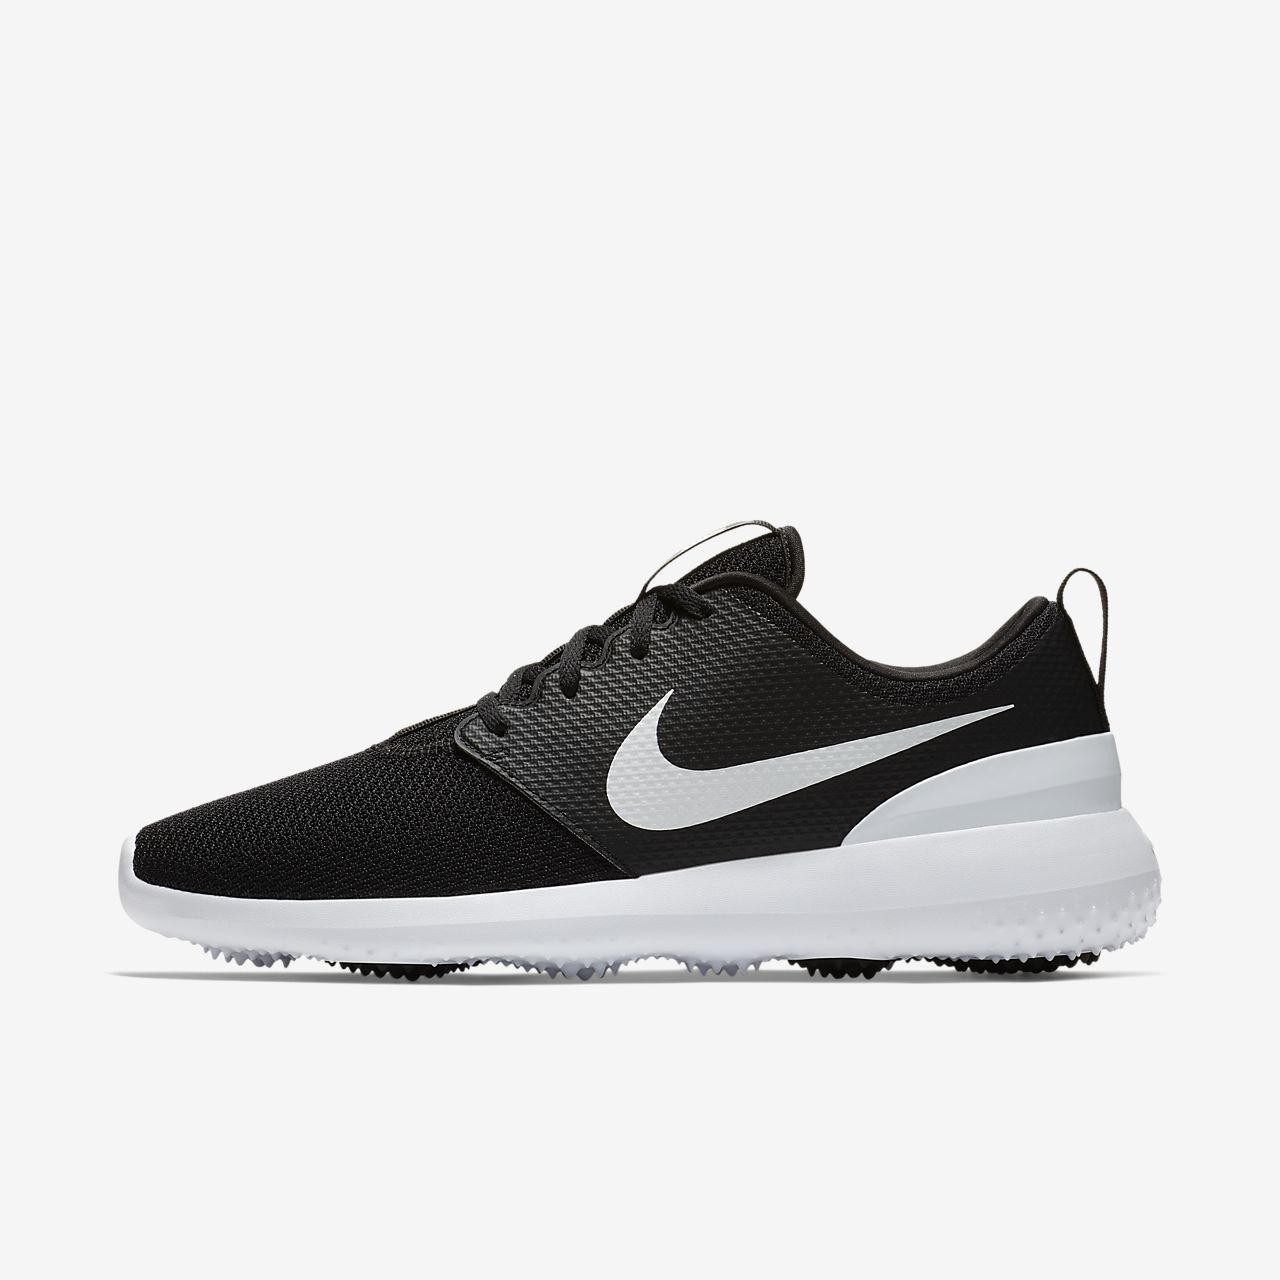 separation shoes 0220b 88a21 Nike Roshe G Men s Golf Shoe. Nike.com CA